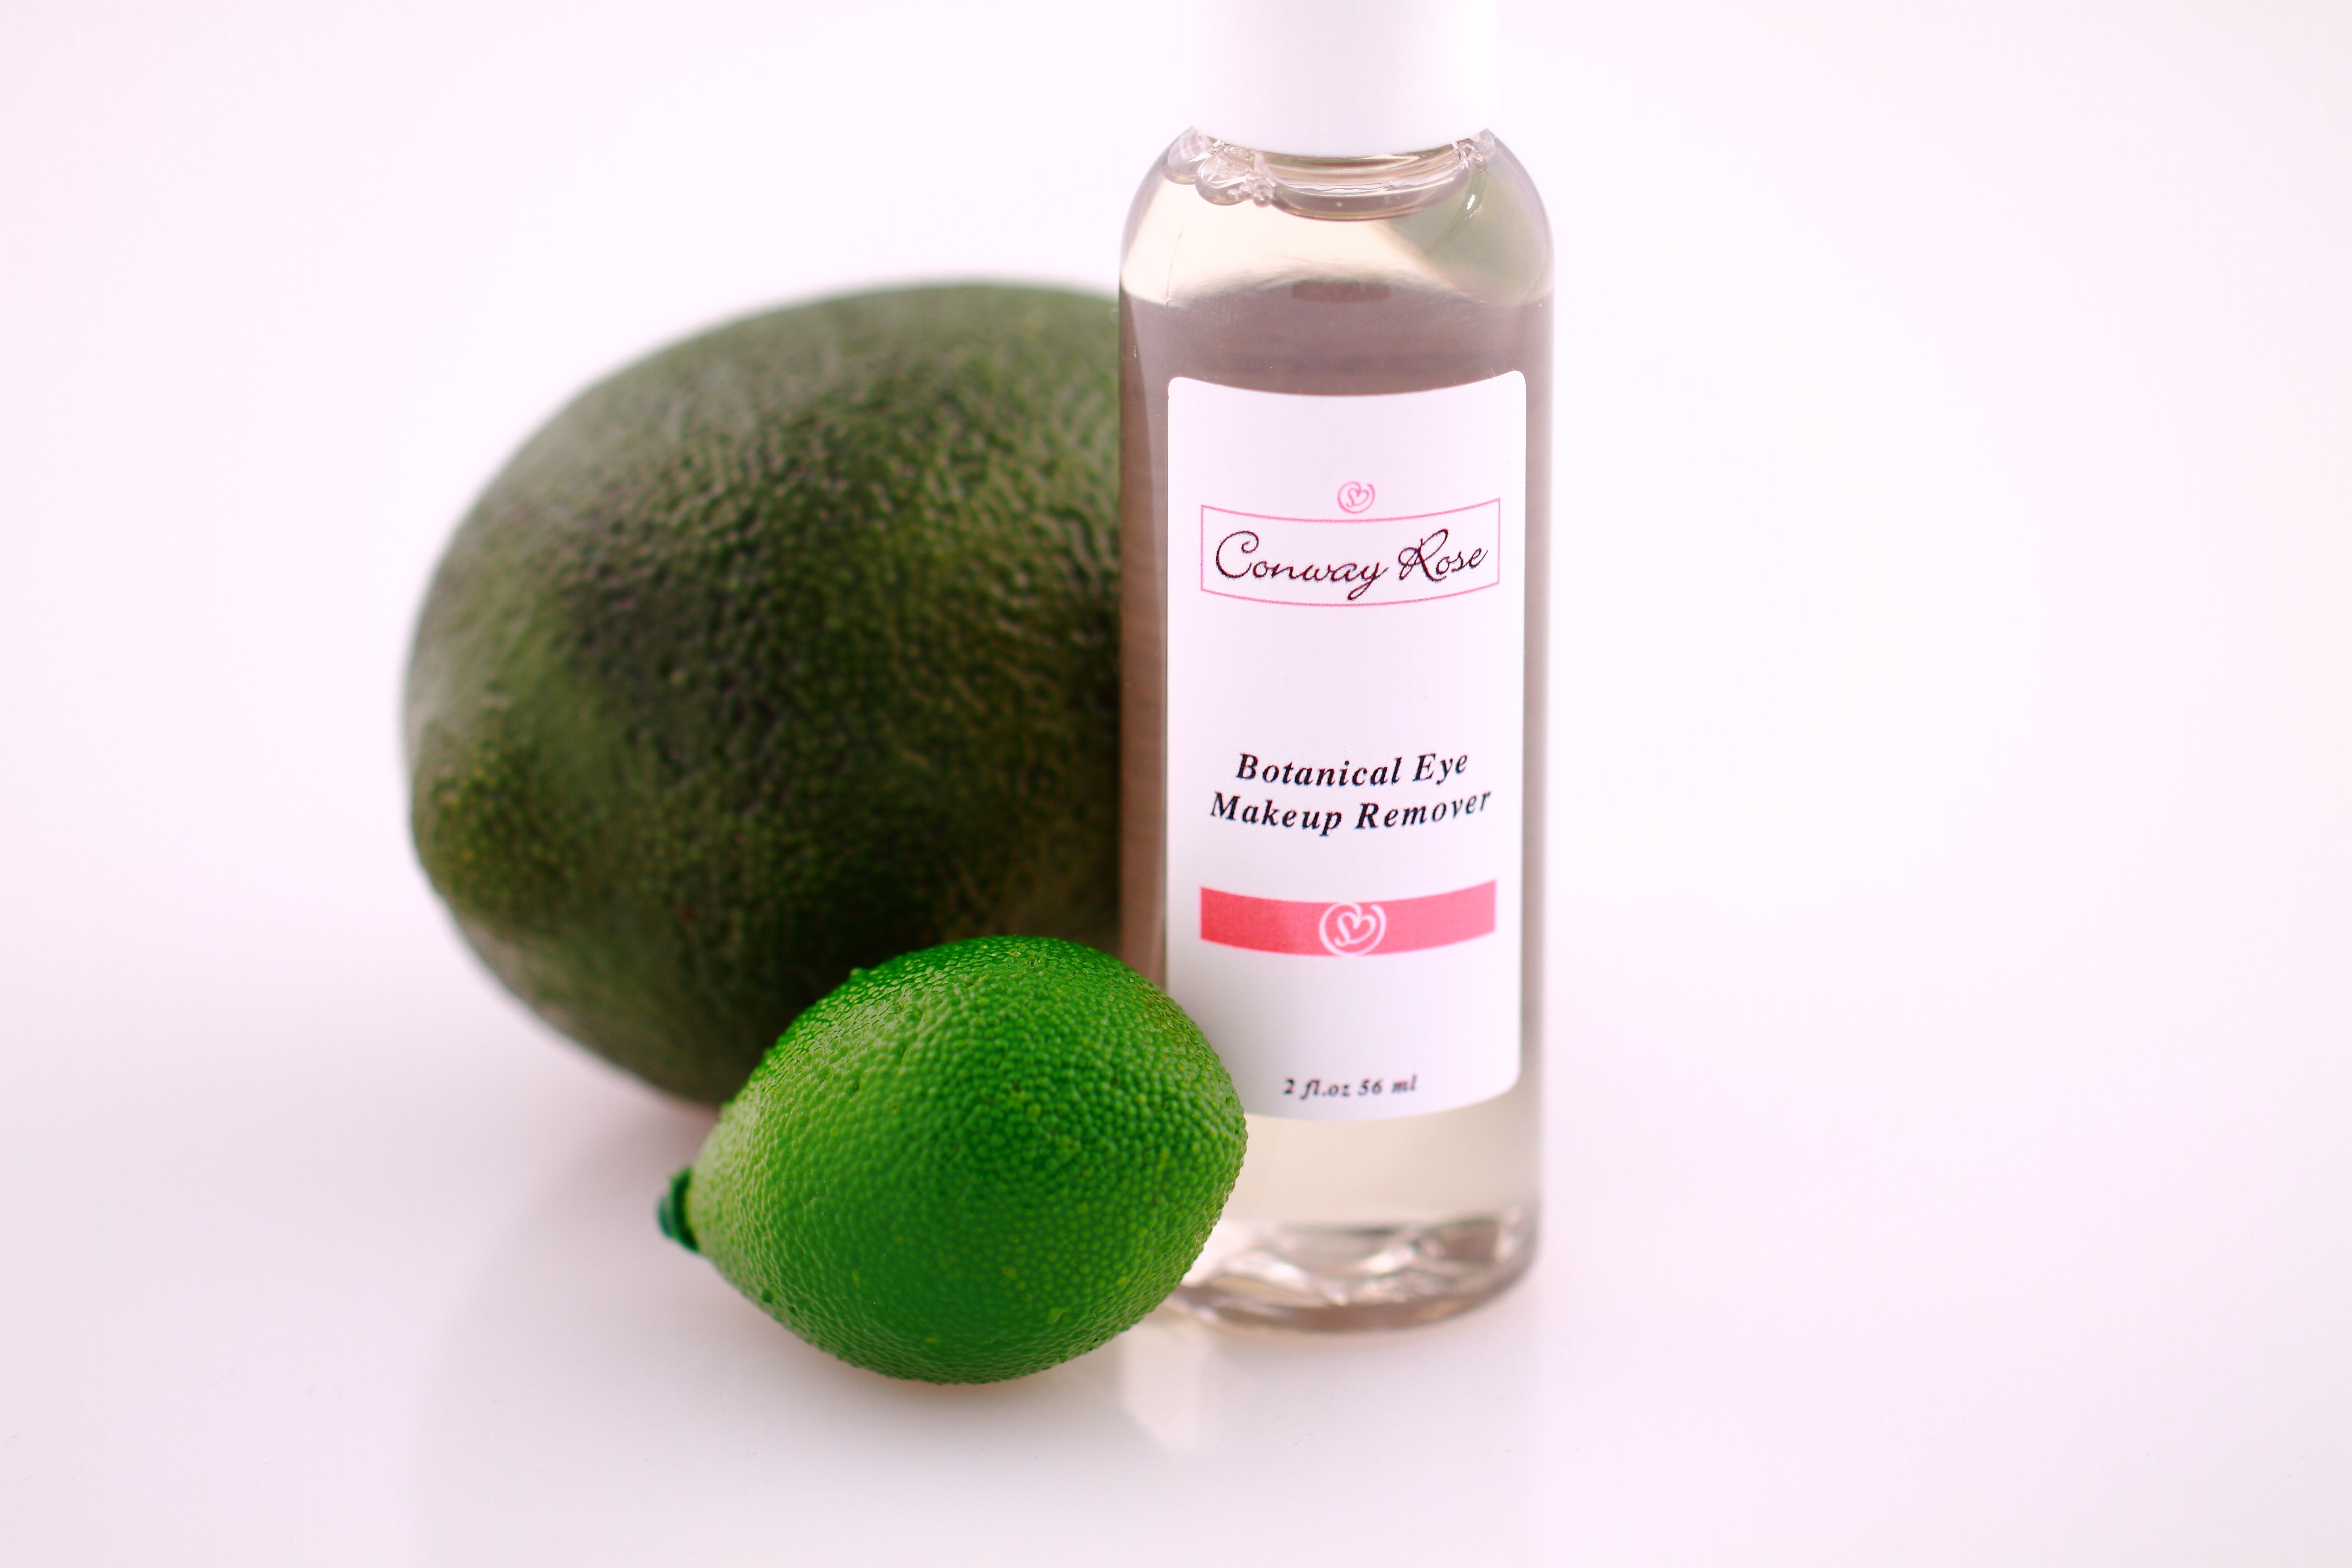 Botanical Eye Makeup Remover This gentle, nonsolvent